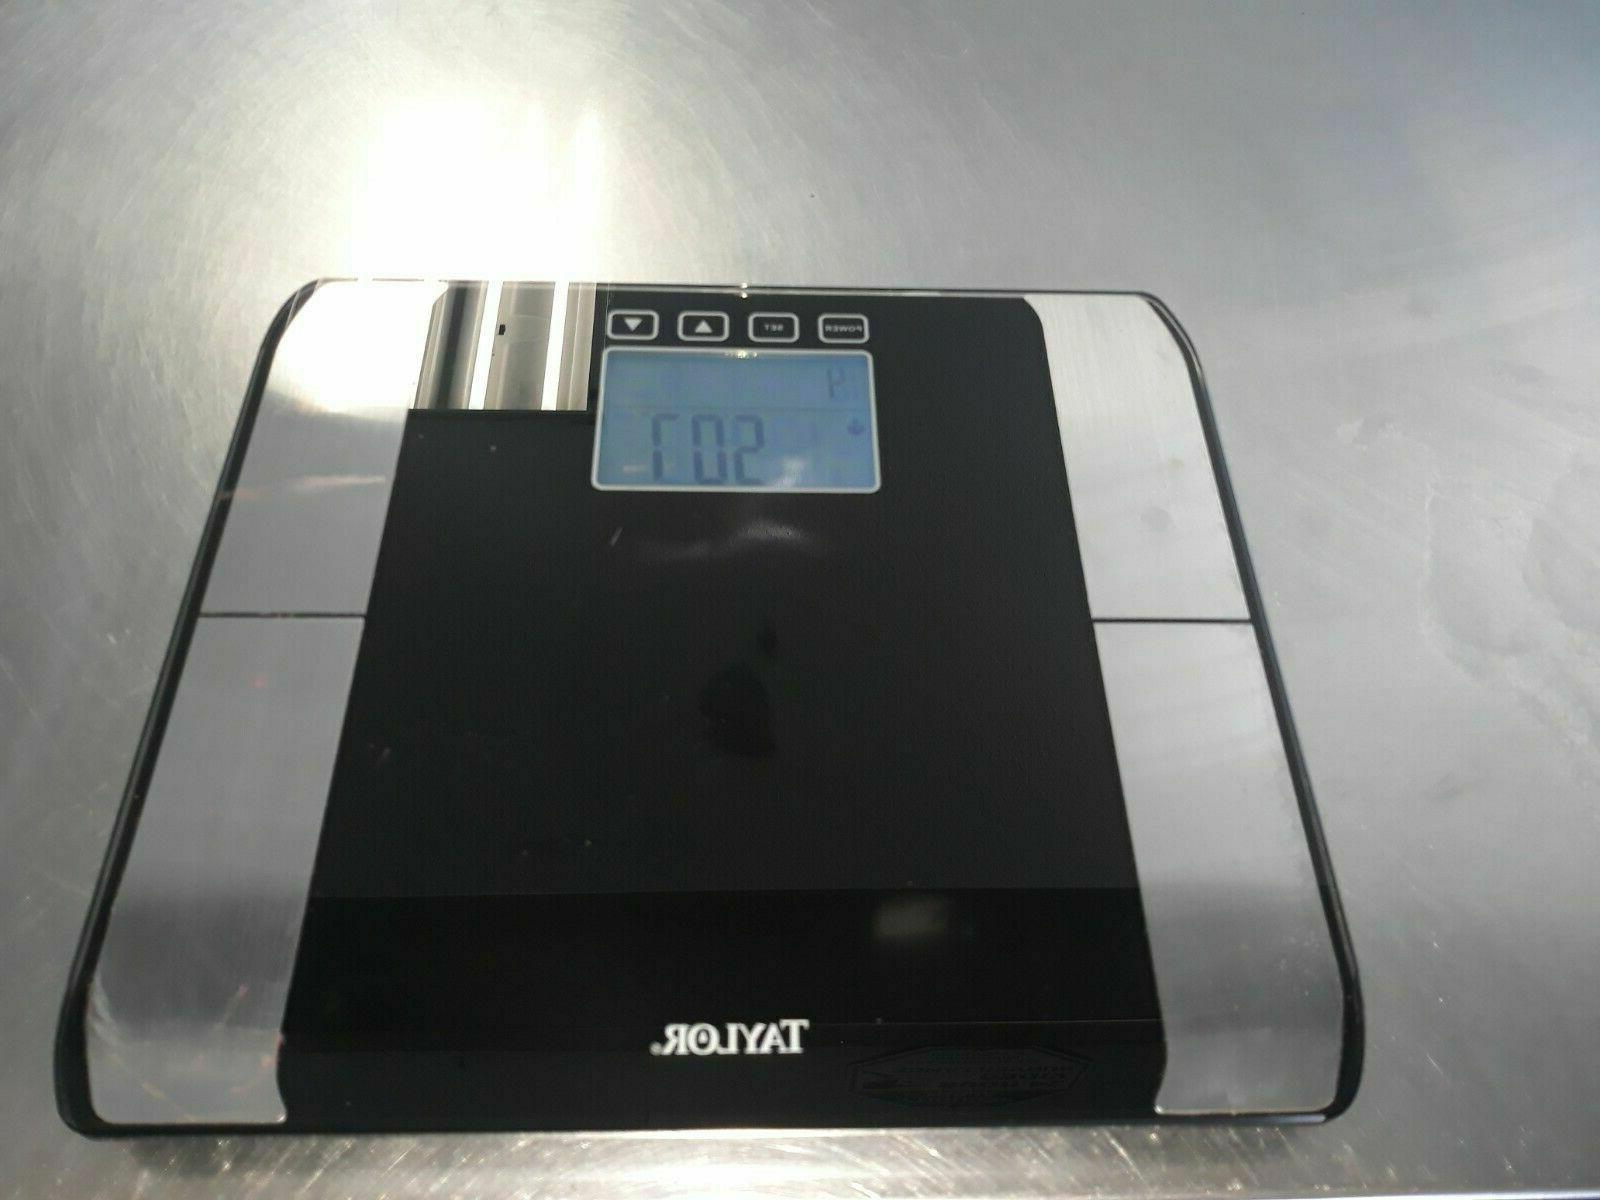 body fat scale model 5761bf working condition